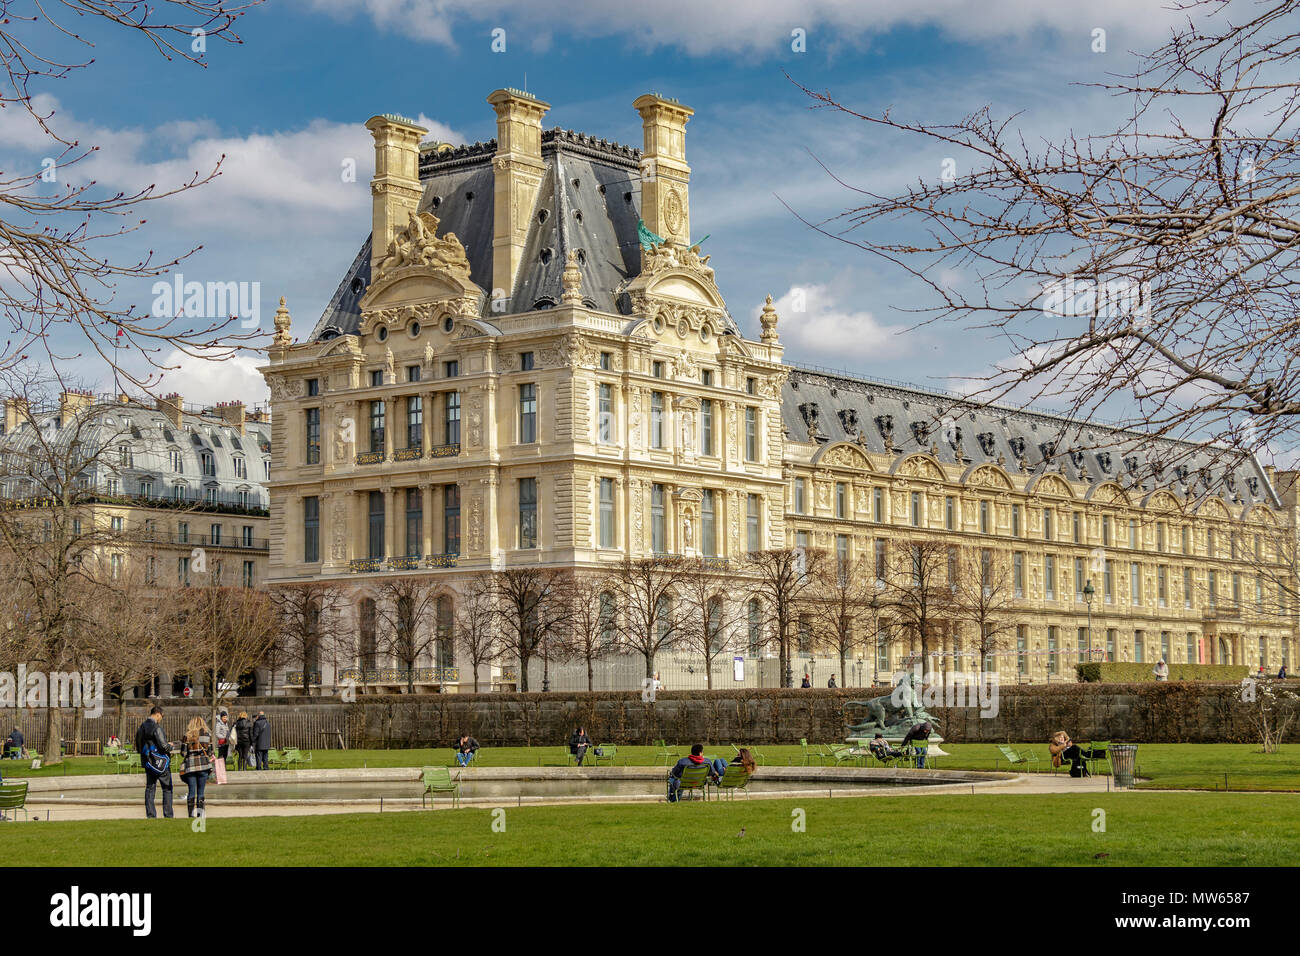 People relaxing in the winter sunshine in the Jardin des Tuileries with  Pavillon de Marsan part of the The Louvre museum in the background ,Paris Stock Photo